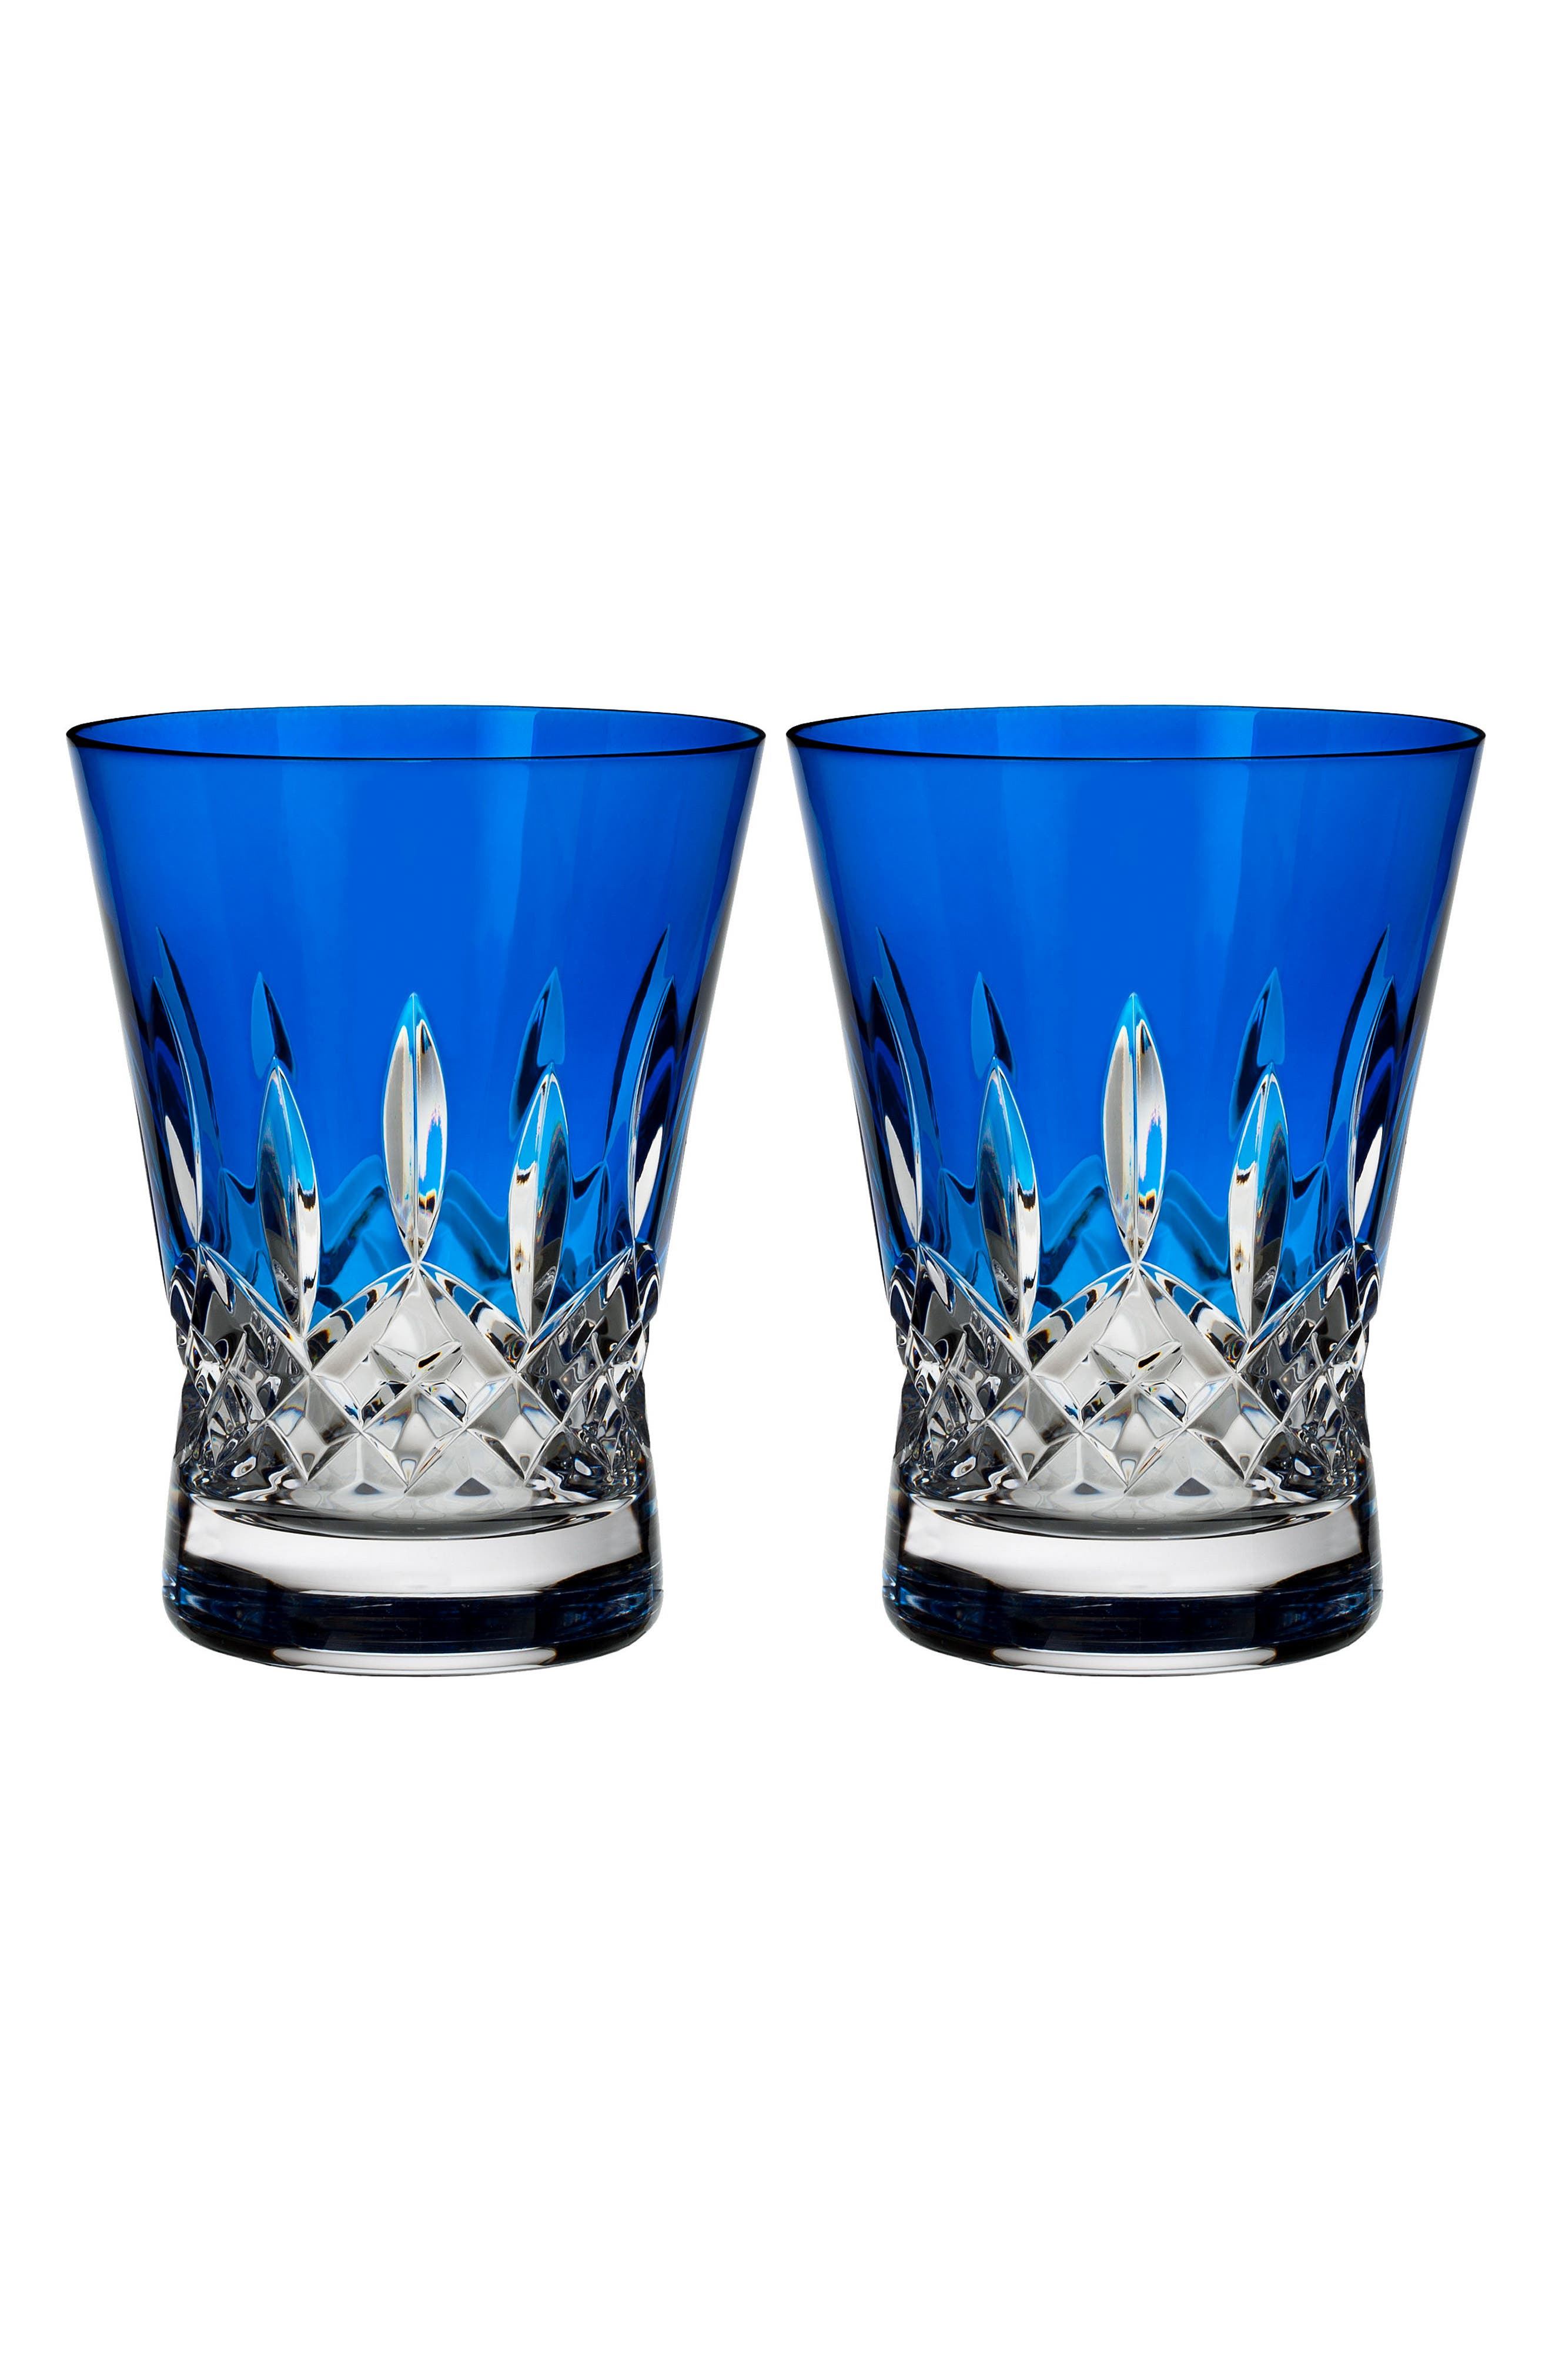 Lismore Pops Set of 2 Cobalt Lead Crystal Double Old Fashioned Glasses,                             Main thumbnail 1, color,                             100